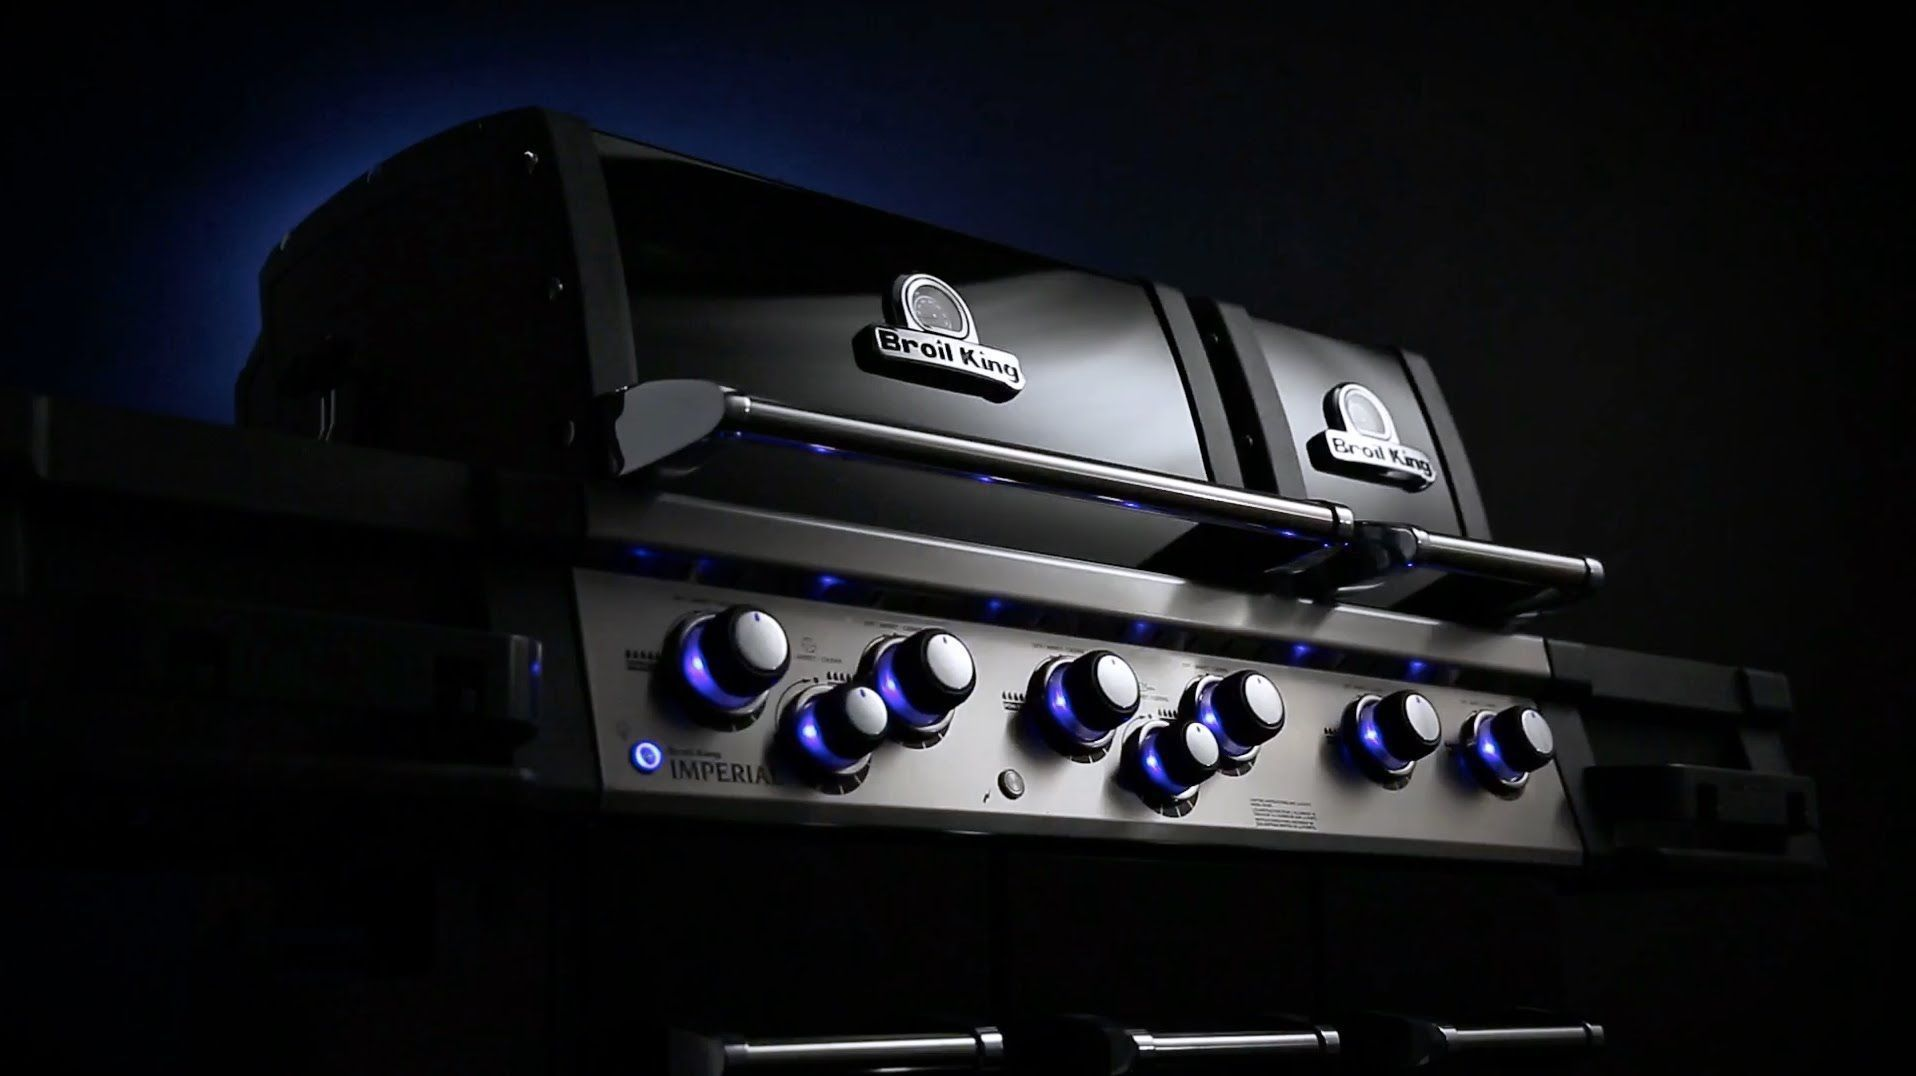 imperial-xl-black-broil-king-polgrill